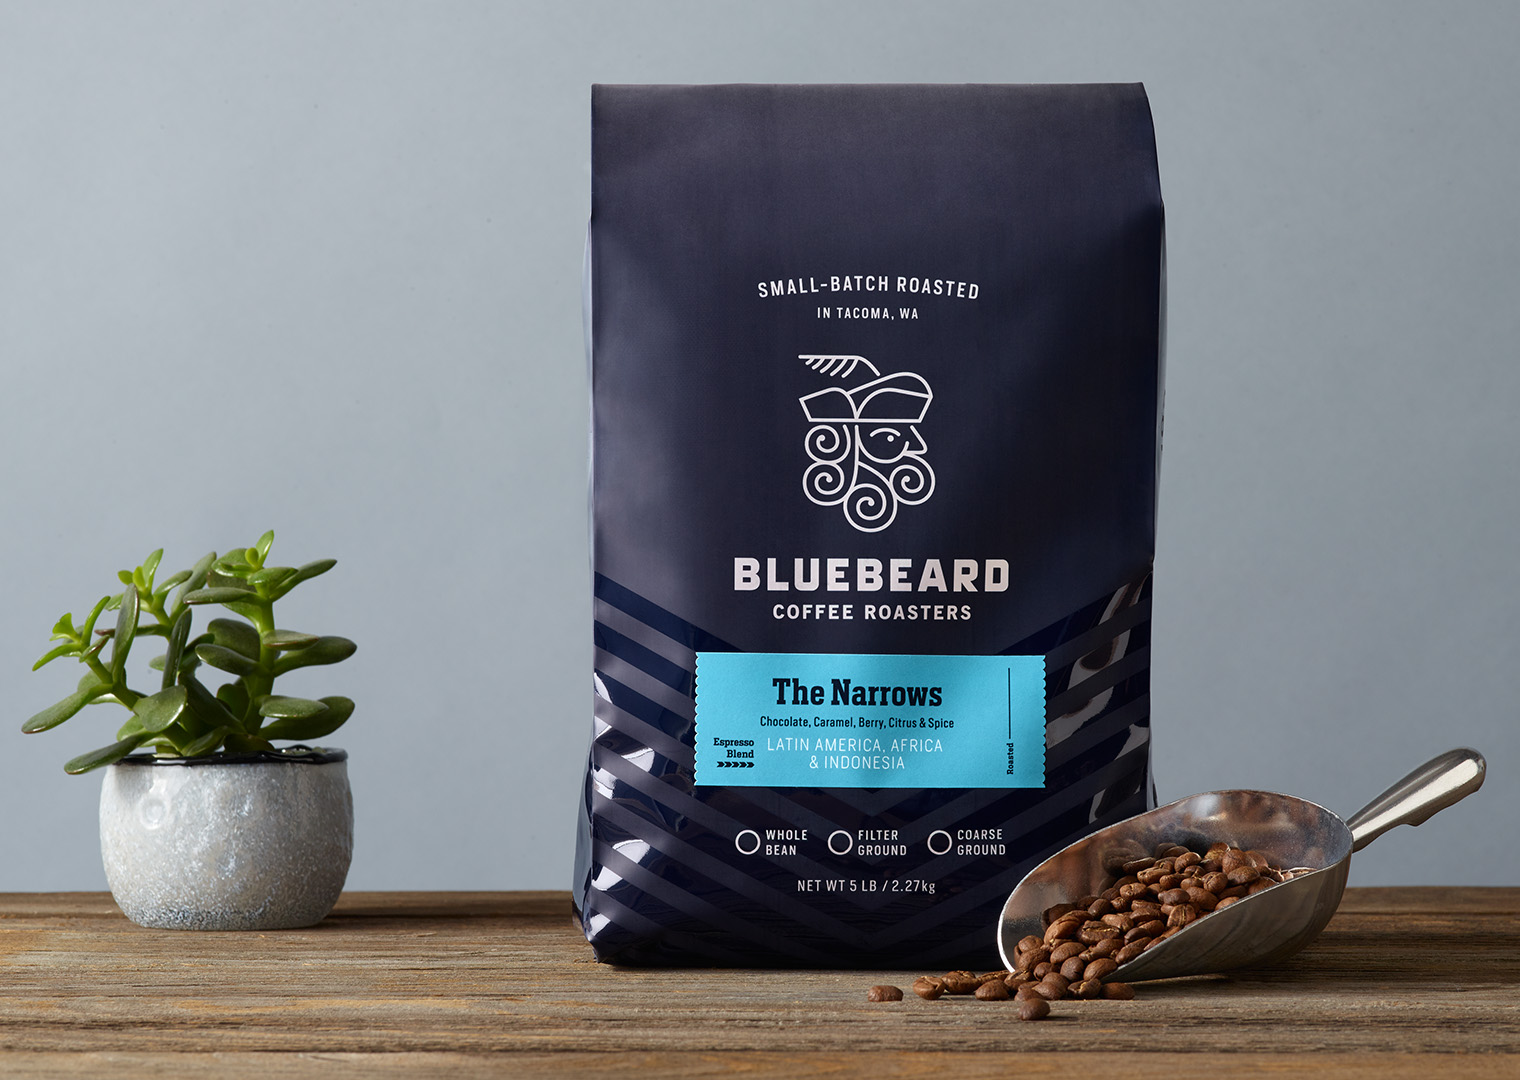 Bluebeard Coffee Roasters 5lb bag